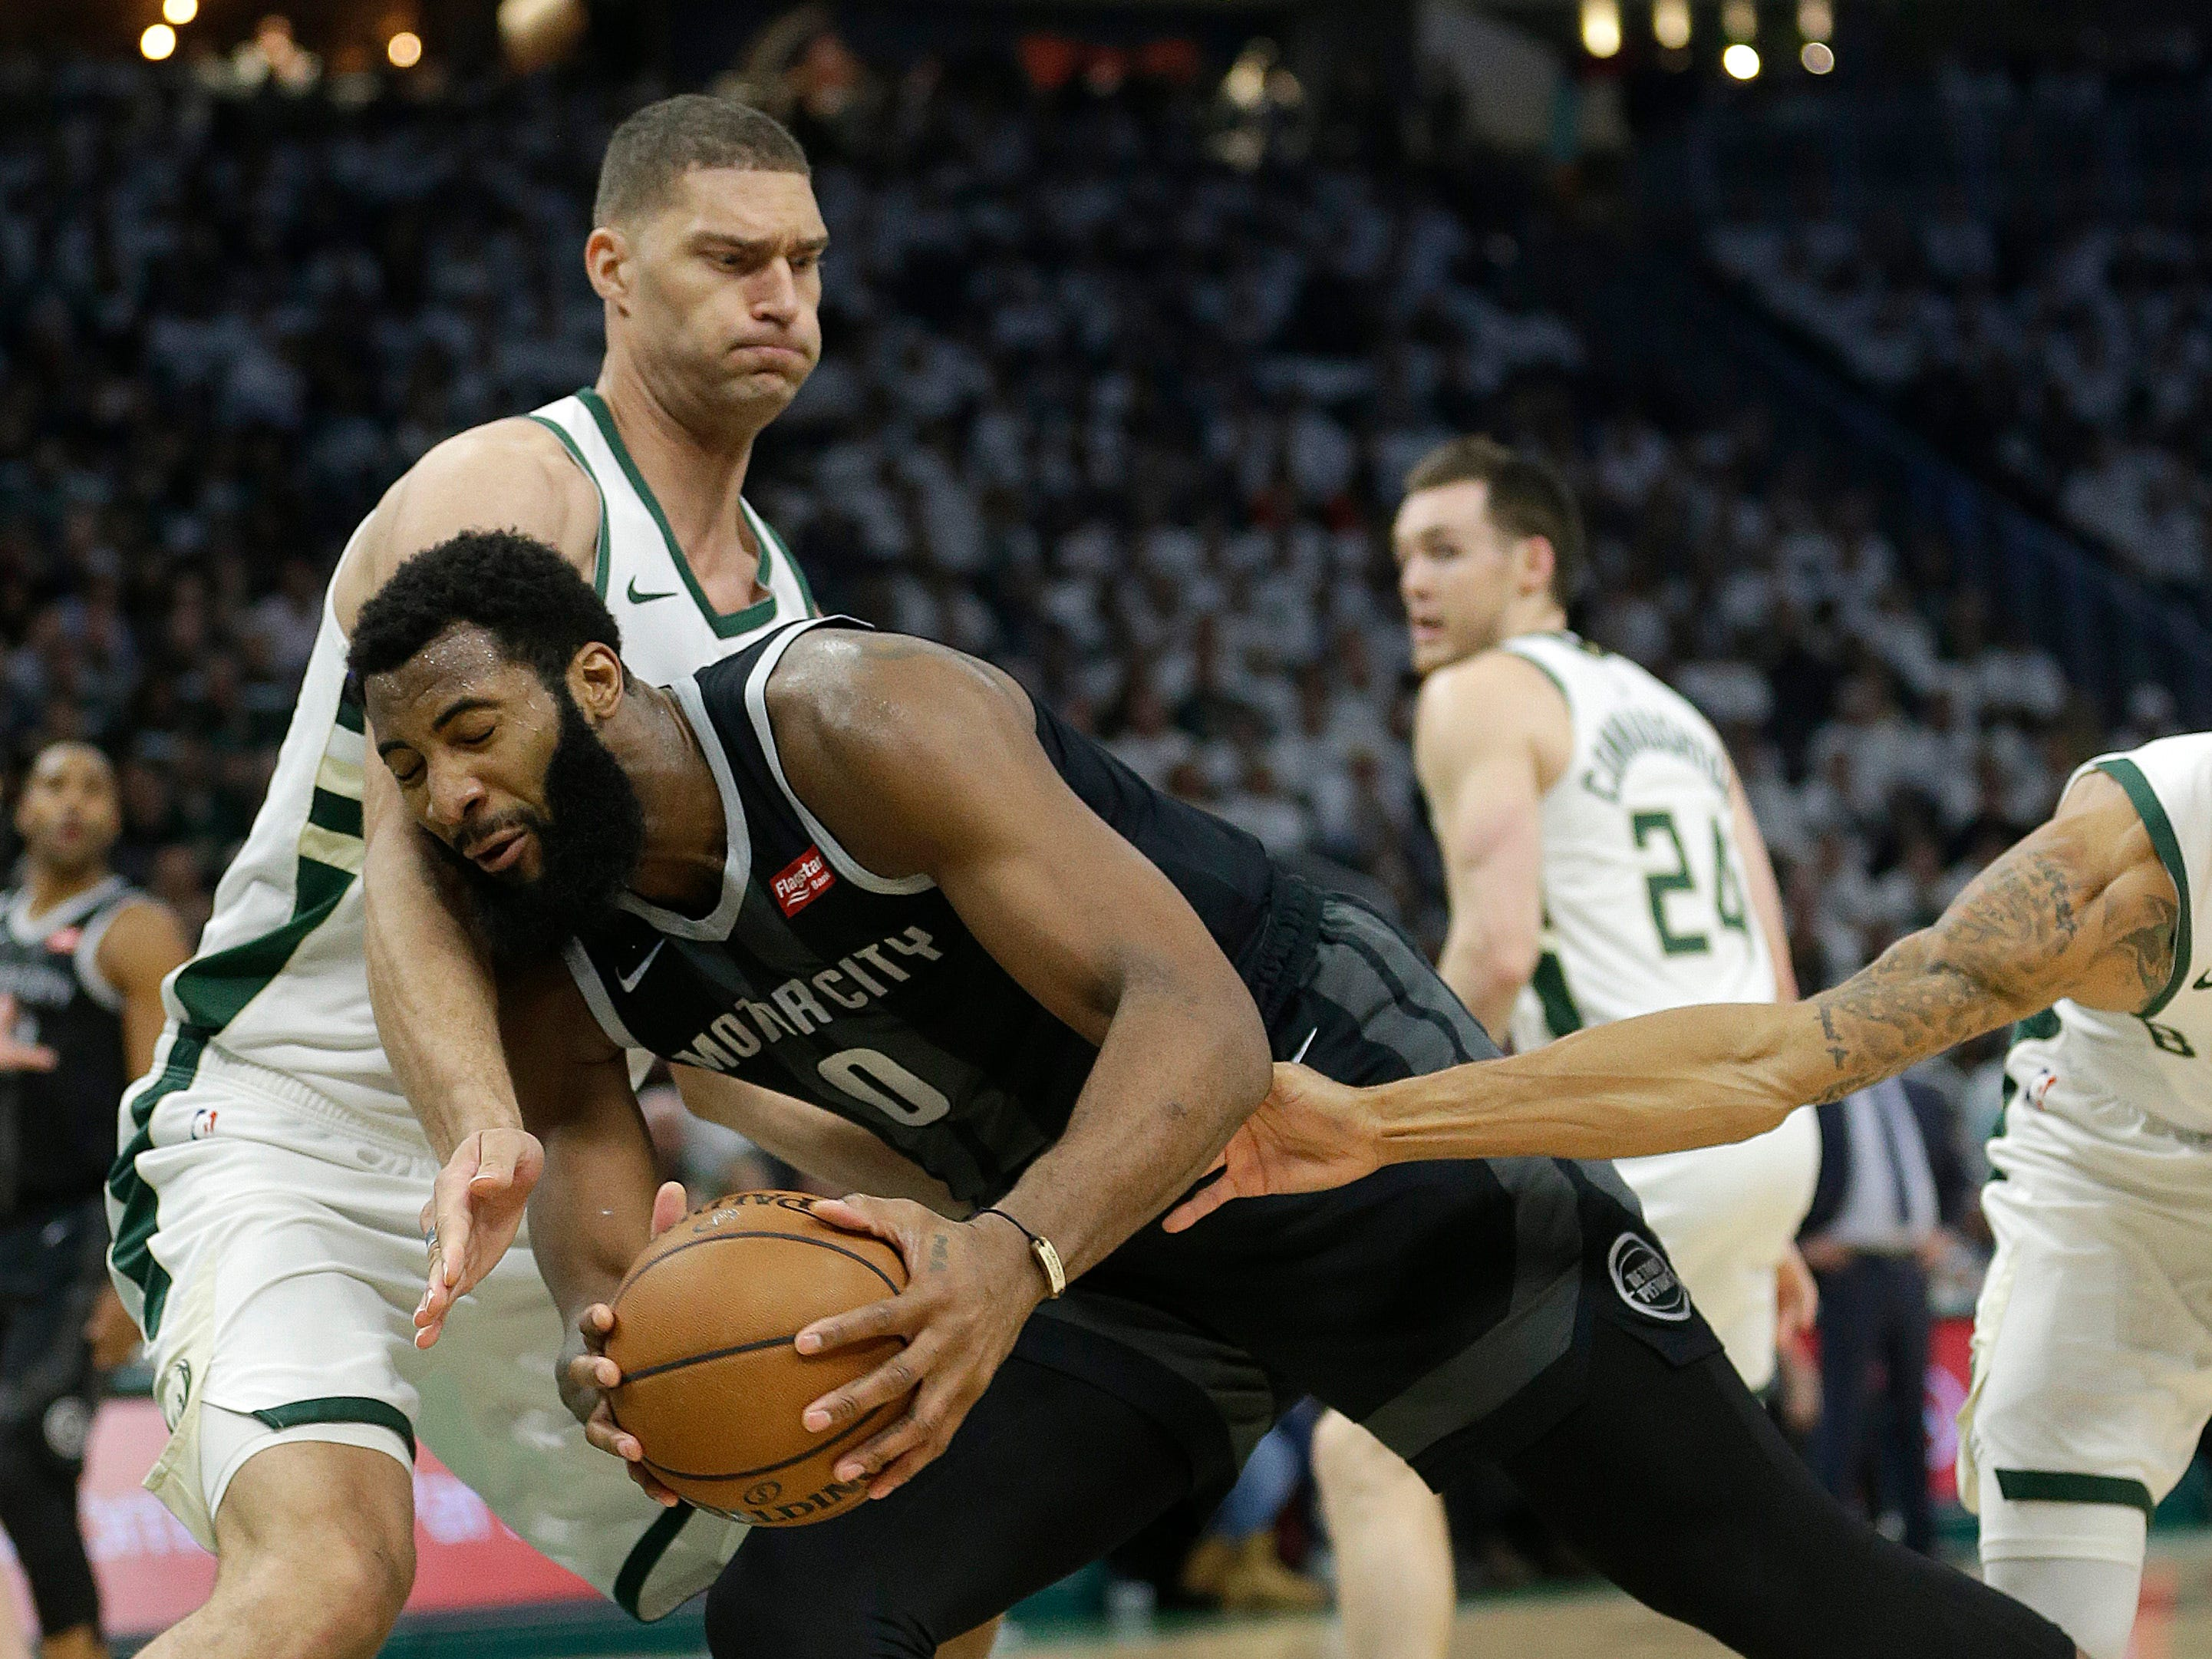 Detroit Pistons' Andre Drummond is fouled as he drives between Milwaukee Bucks' Brook Lopez, left, and George Hill during the first half of Game 1 on Sunday, April 14, 2019, in Milwaukee.